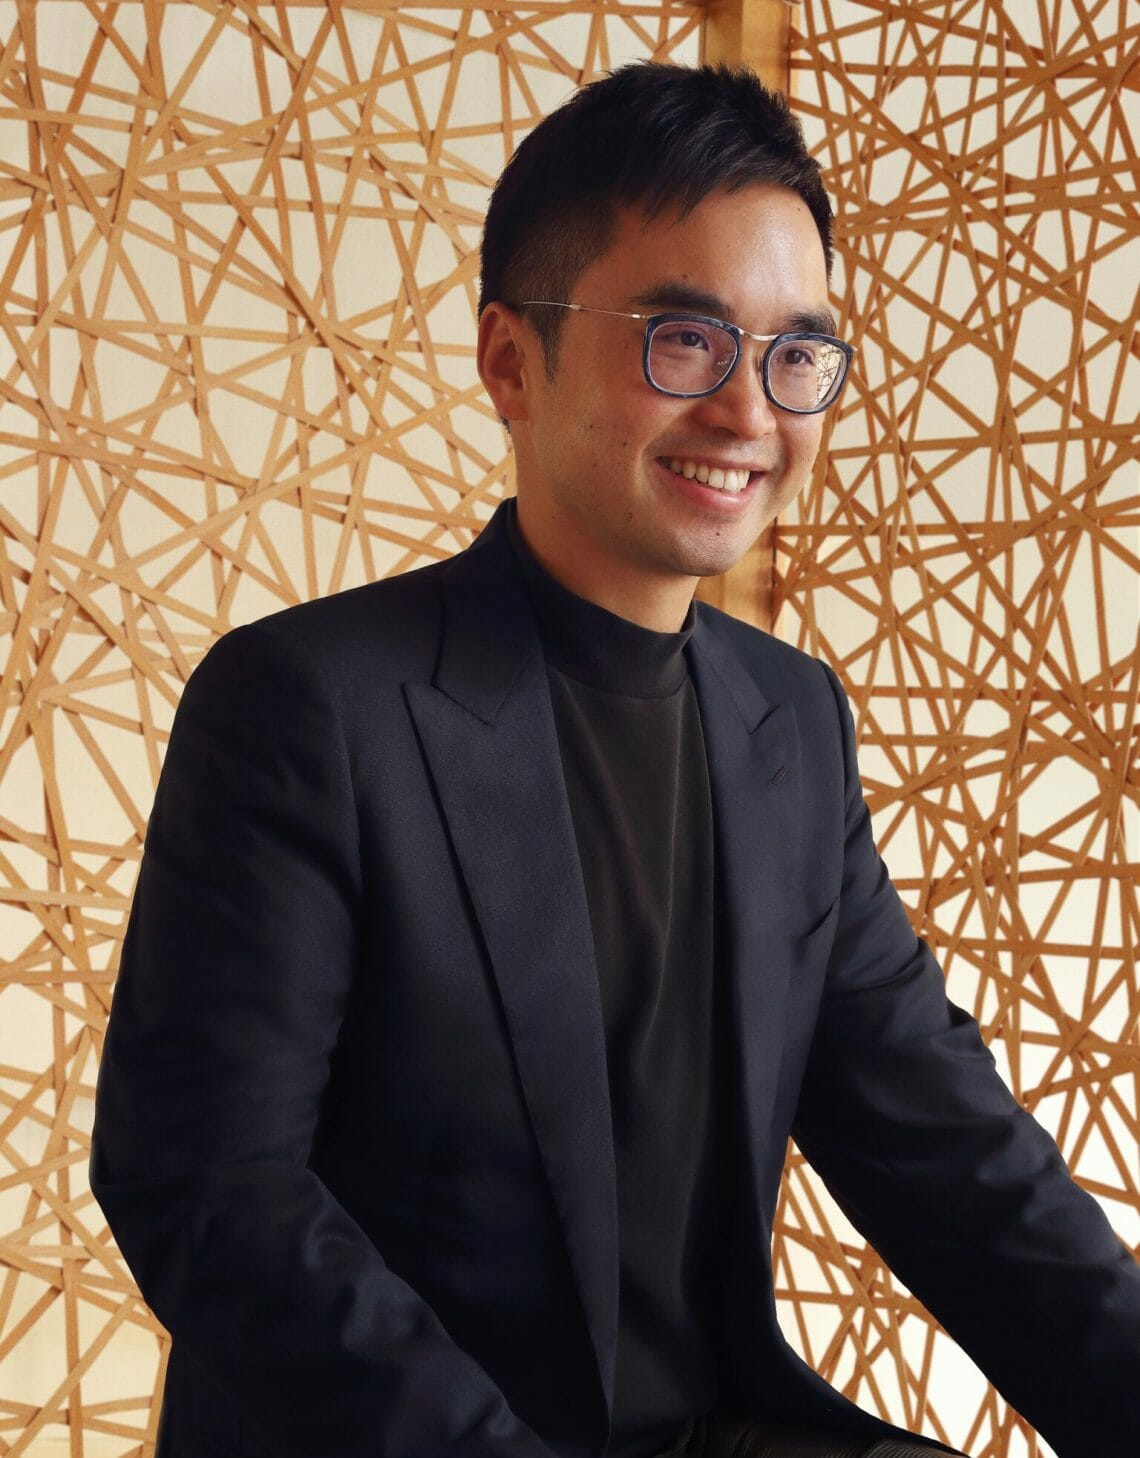 Adrian 2 Disruption, Innovation and Fusion: An Interview With Adrian Cheng - EAT LOVE SAVOR International luxury lifestyle magazine and bookazines